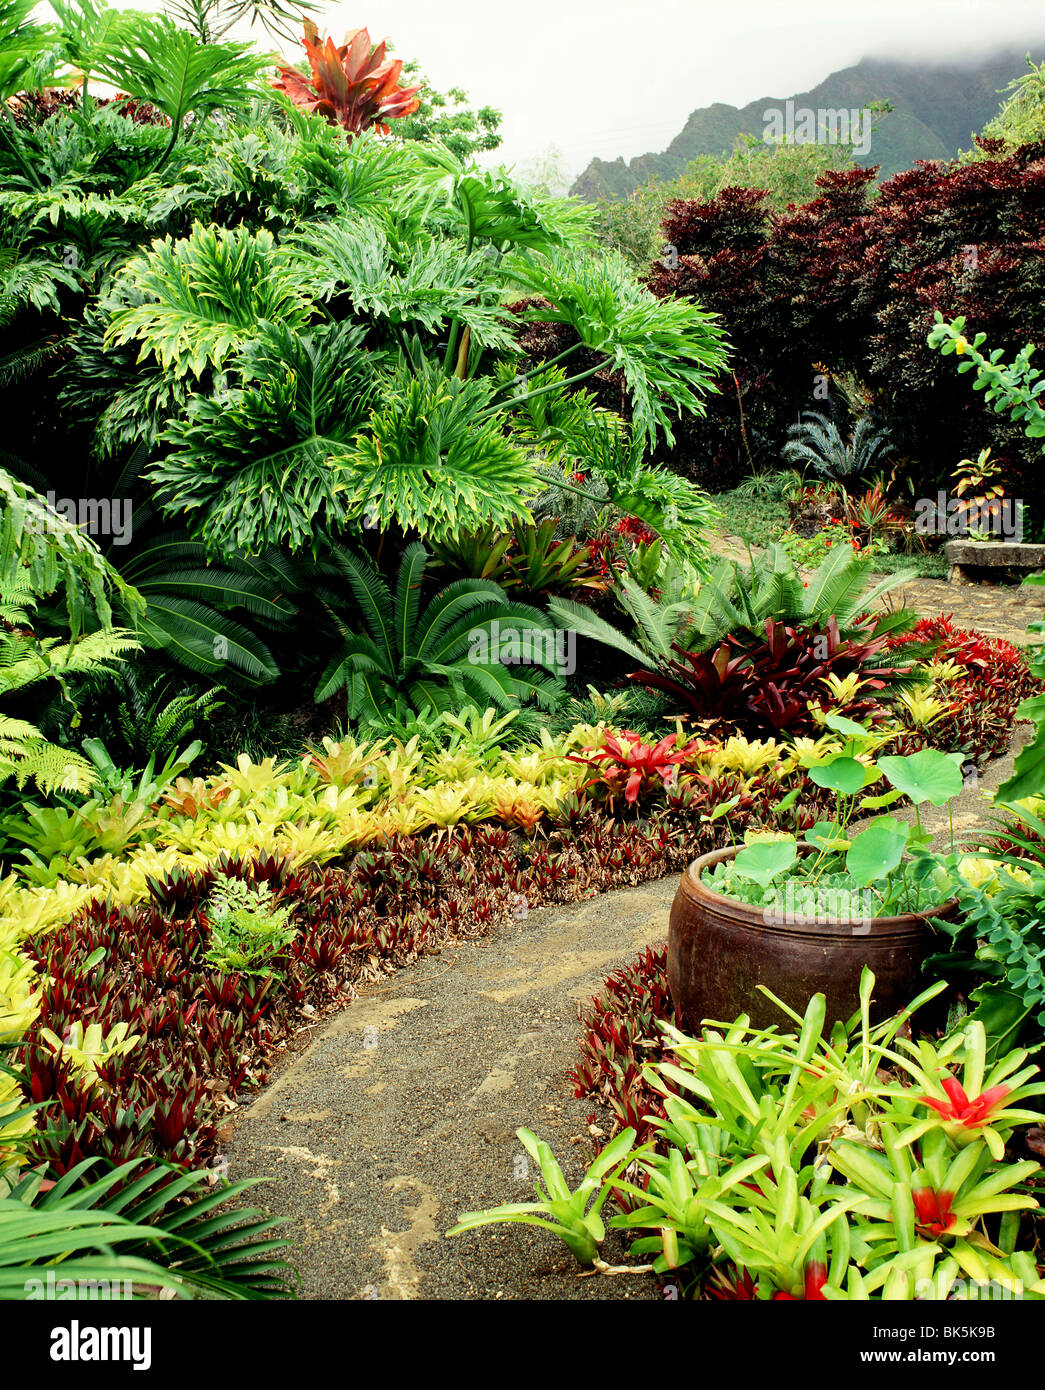 Leland Miyanoi Garden in Oahu, Hawaii, United States of America, Pacific - Stock Image